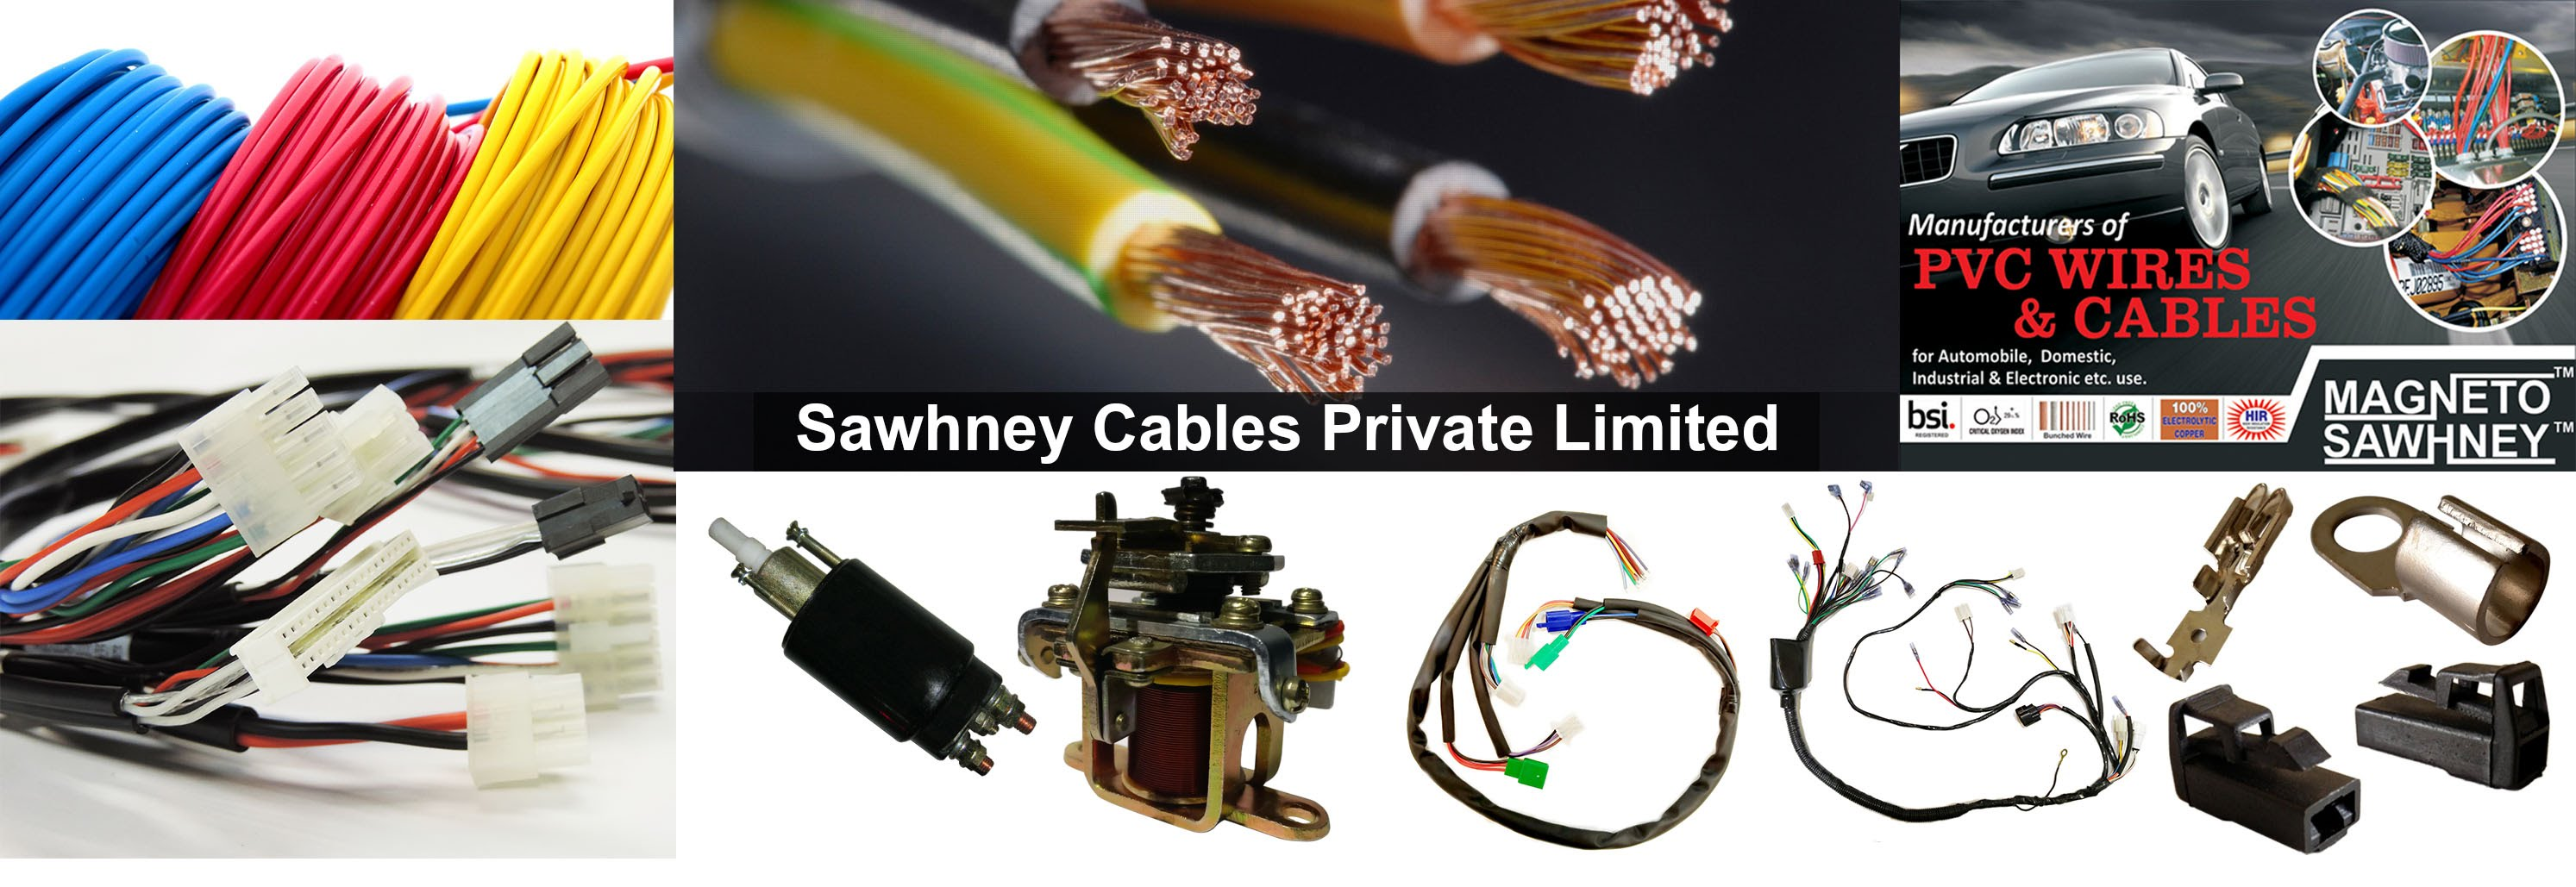 All Kinds Of Pvc Wires Cables Wiring Harness Electrical Auto Us About